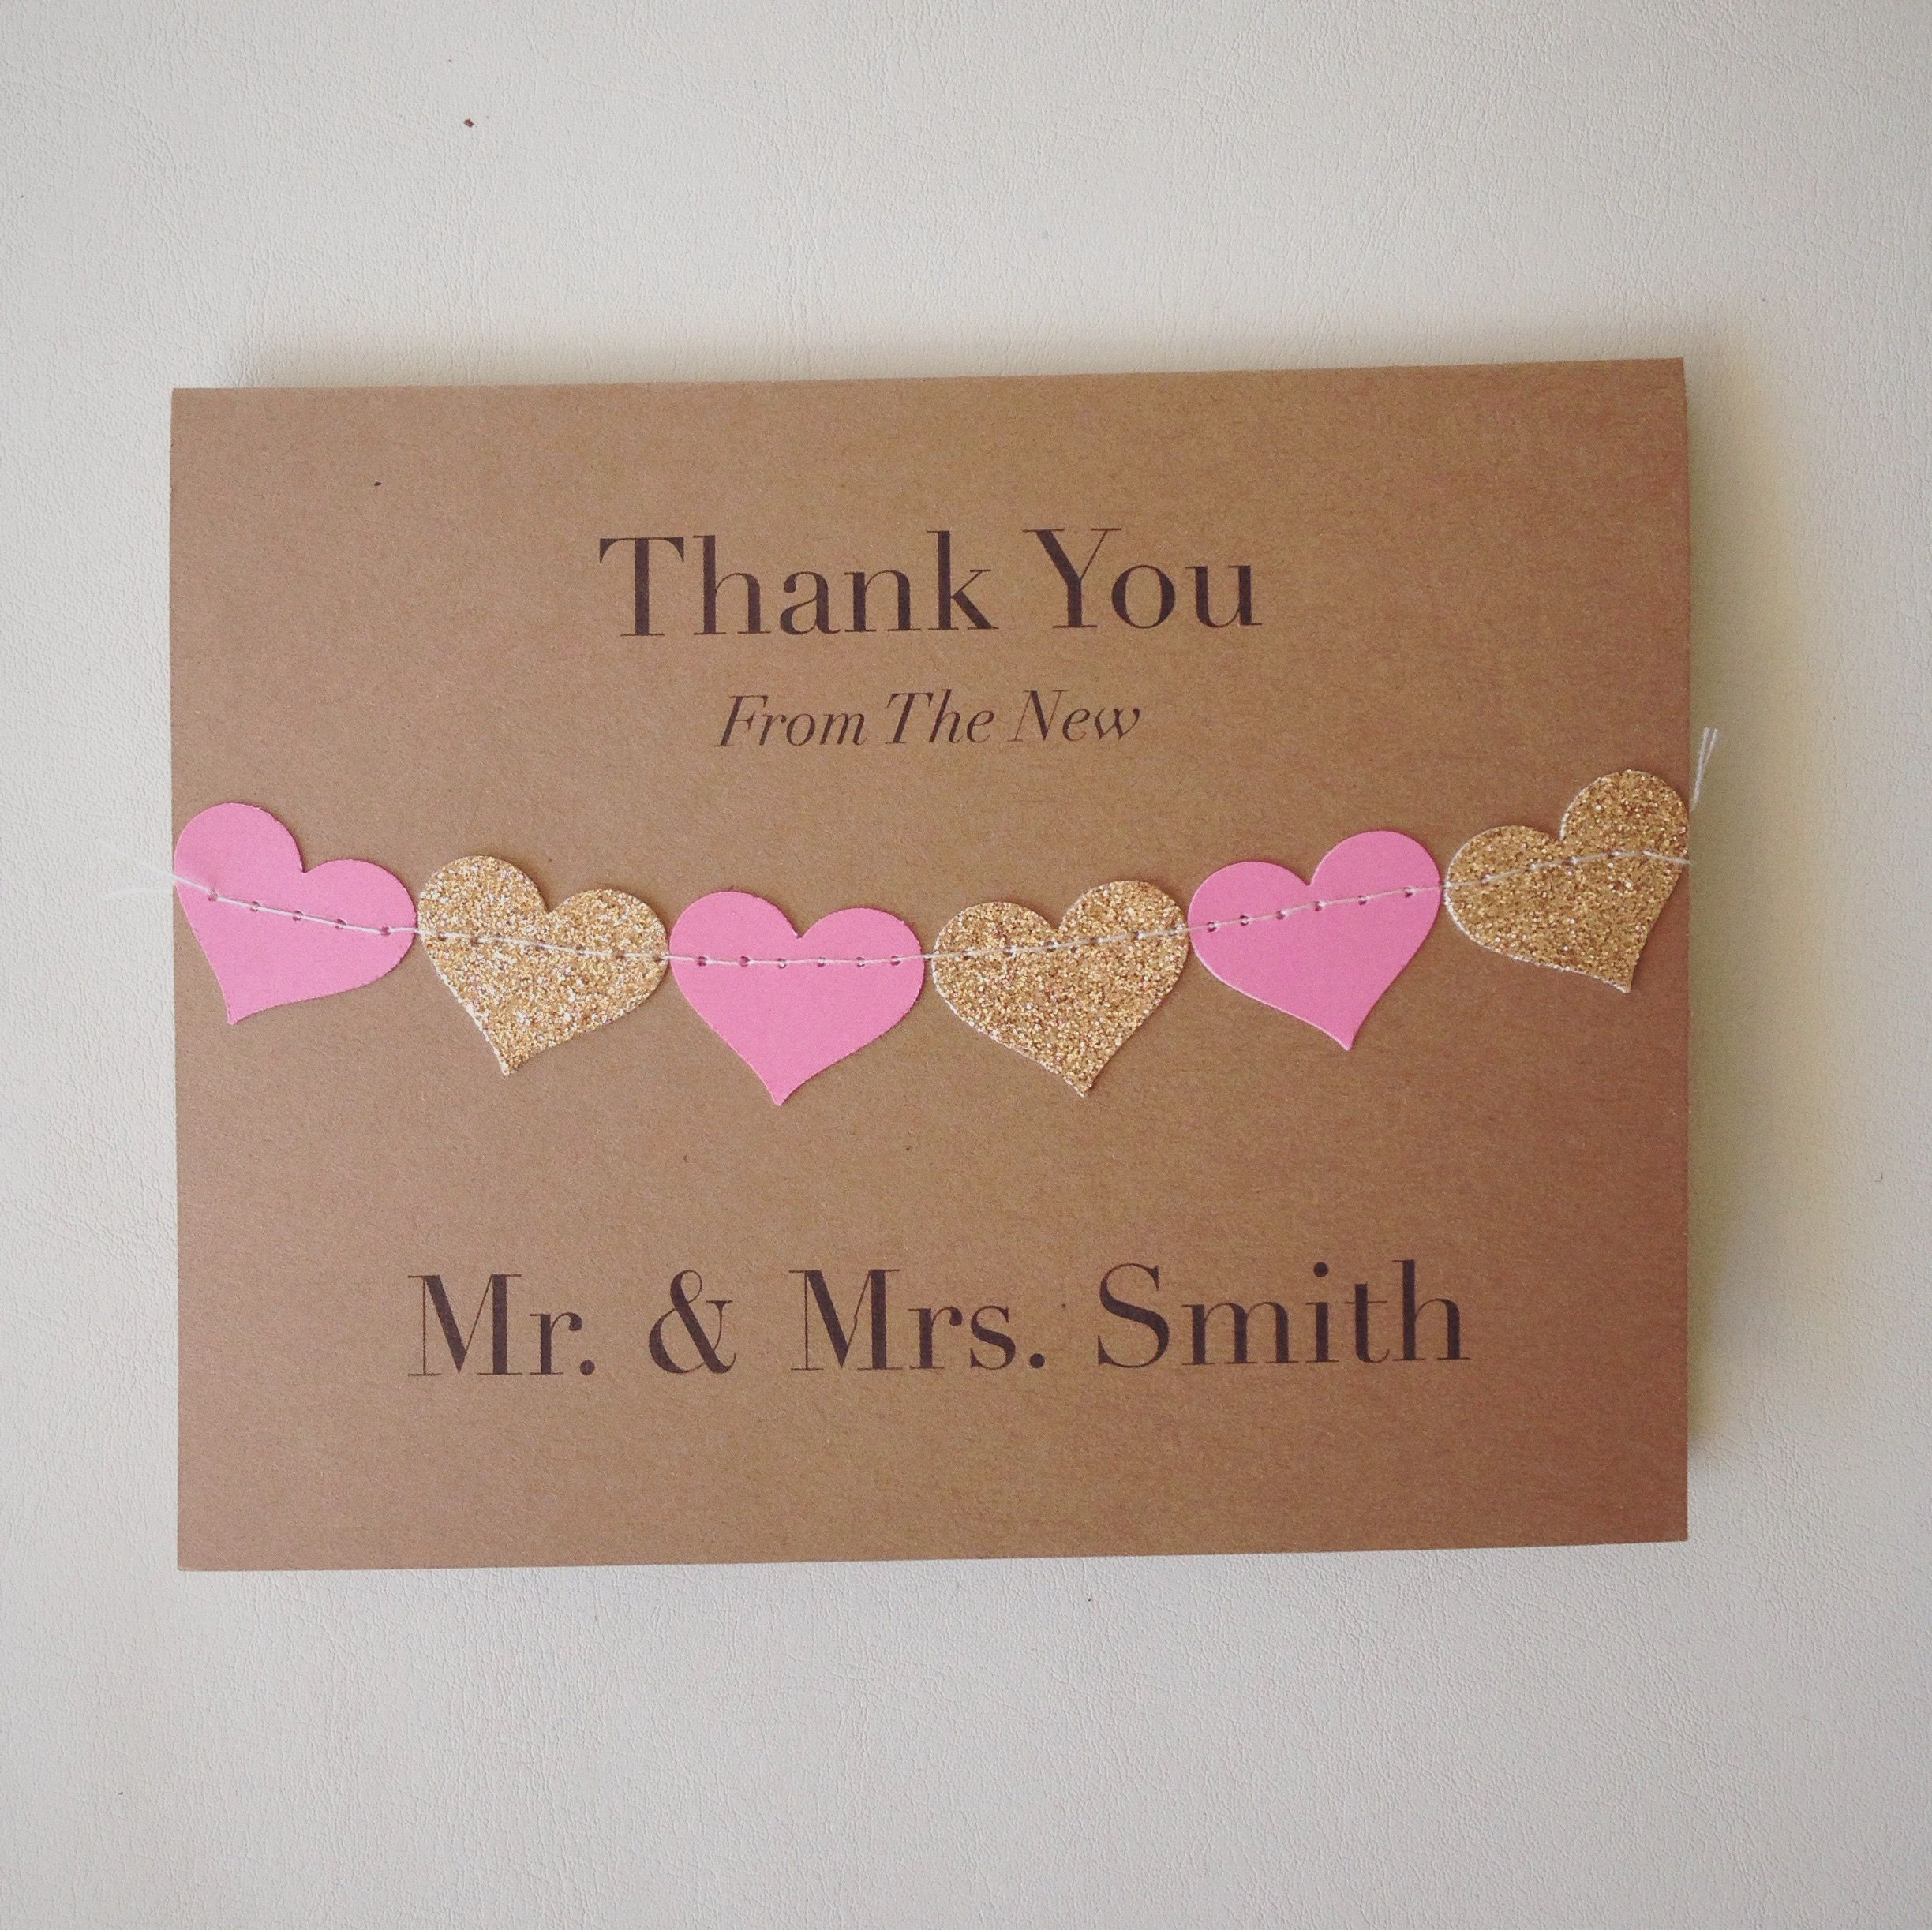 wedding custom thank you cards%0A Personalized wedding thank you cards  with a heart bunting sewn across